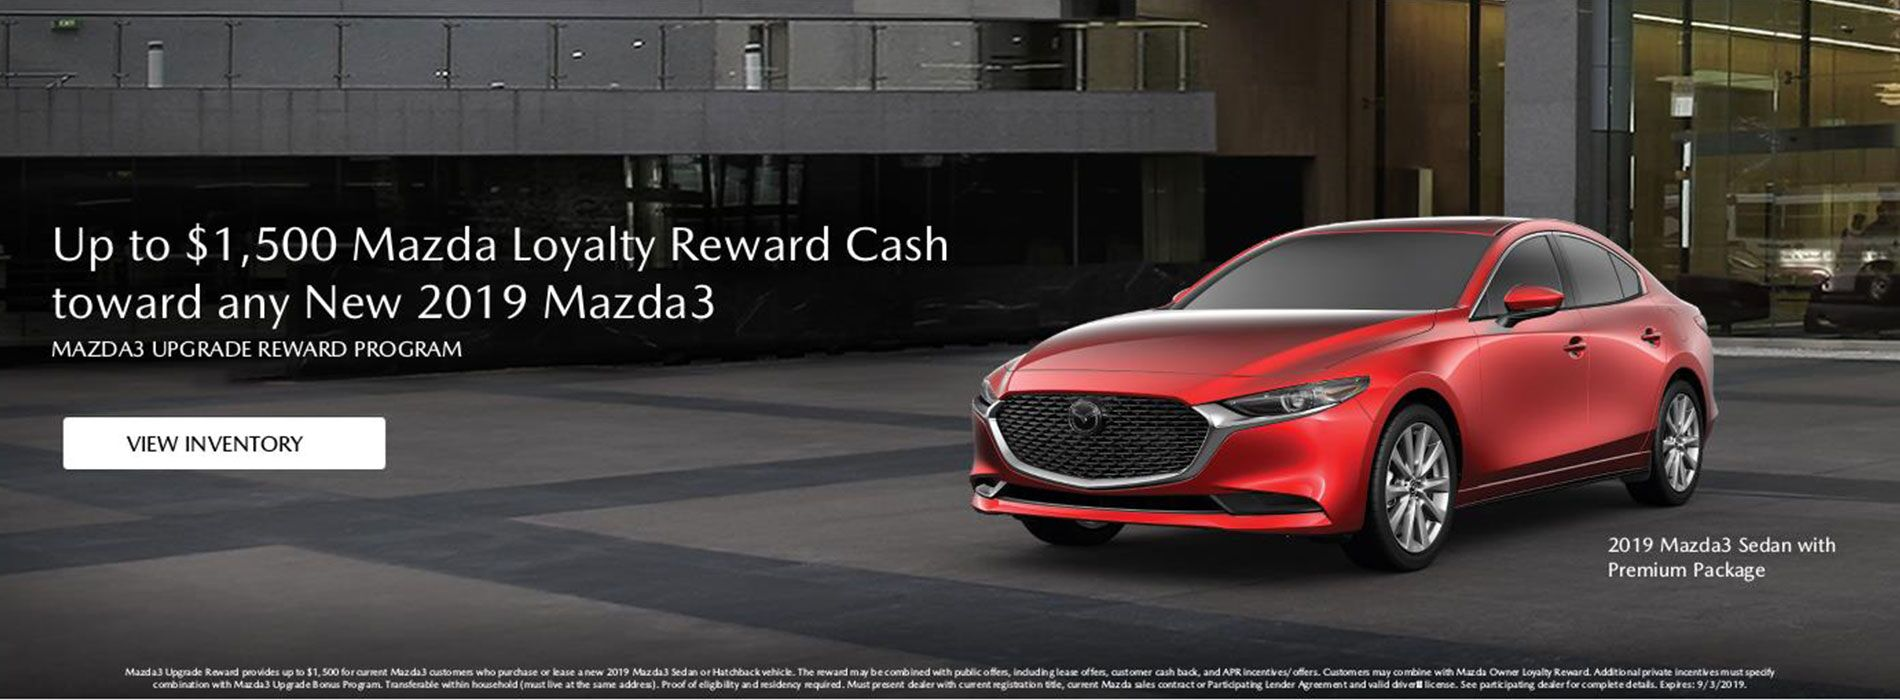 Mazda3 Loyalty Cash